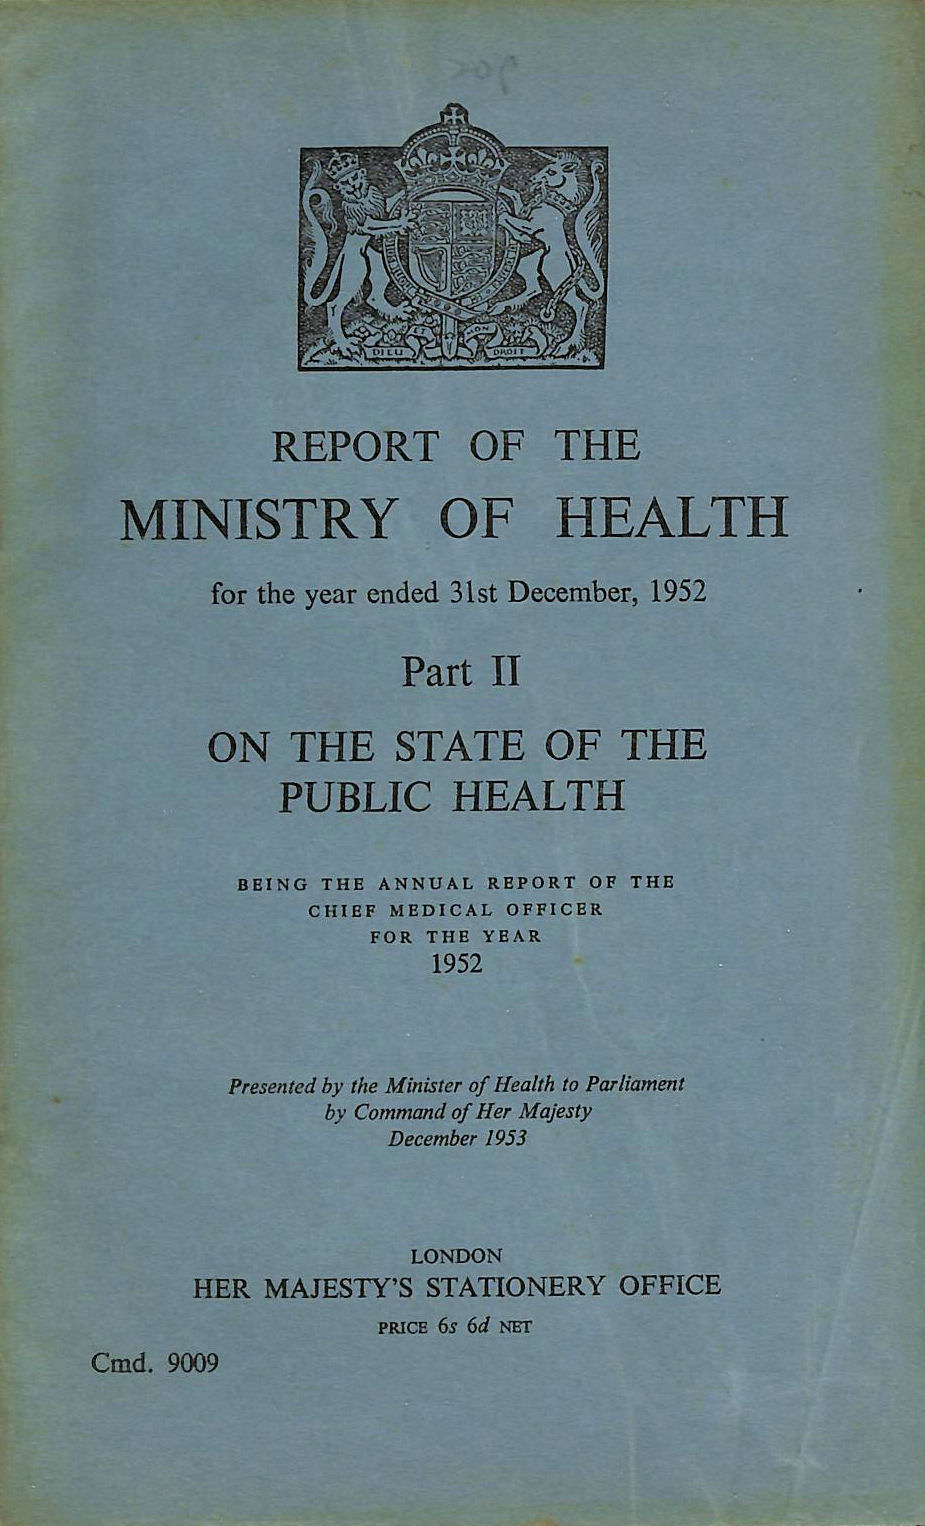 Image for Annual Report of the Chief Medical Officer of the Ministry of Health for the year 1952, Part II